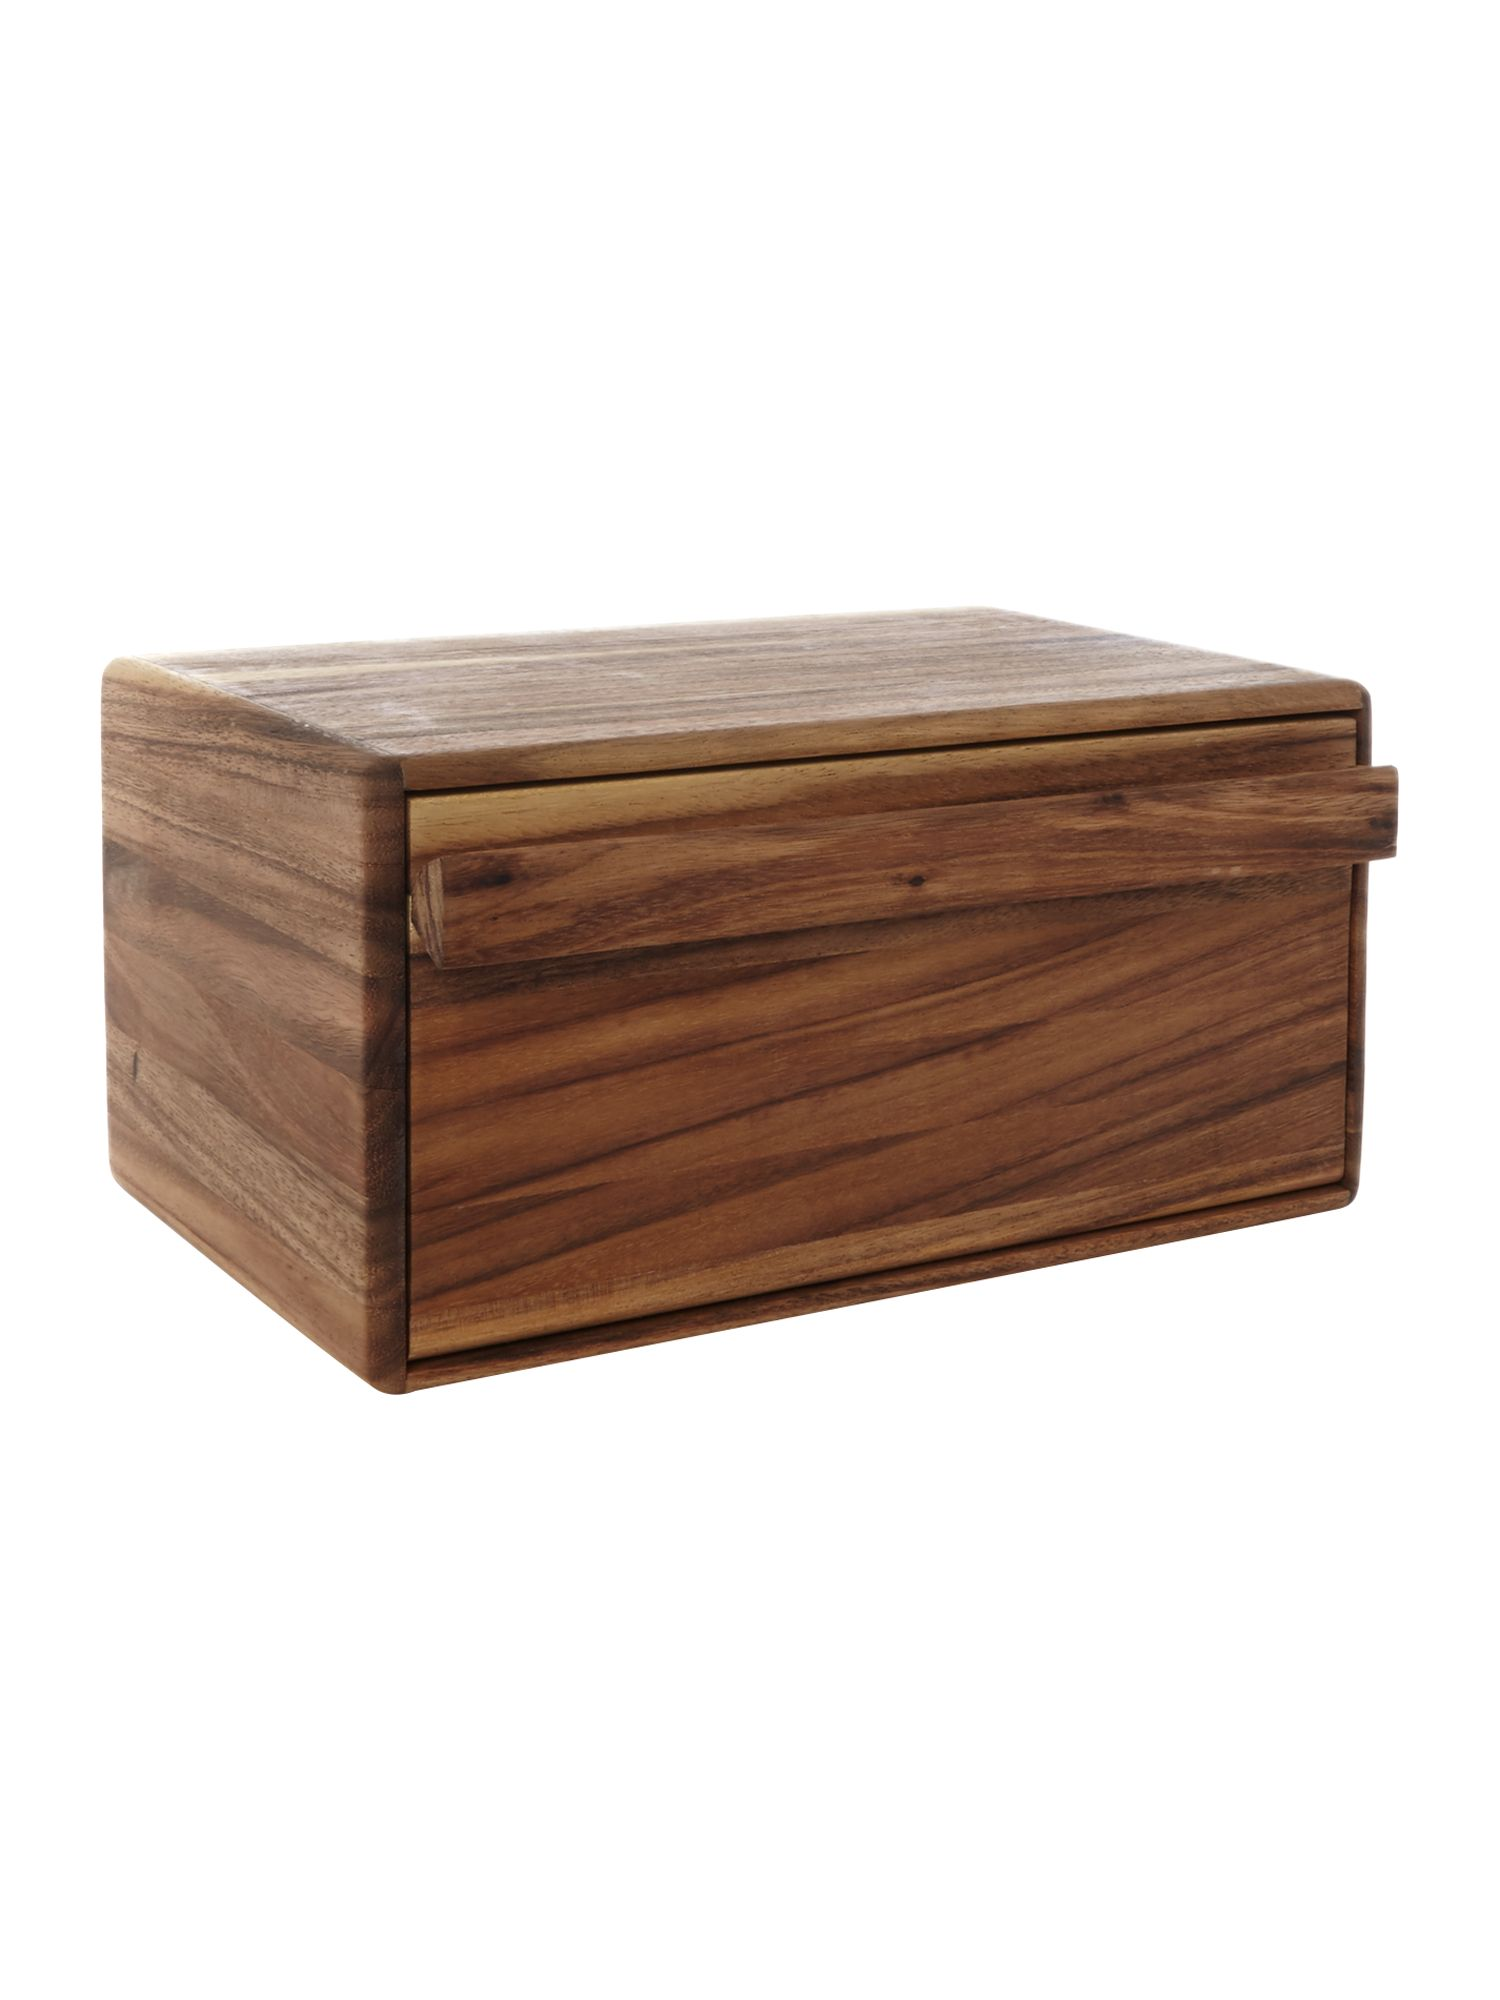 Image of Linea Drop Front Wooden Bread Bin